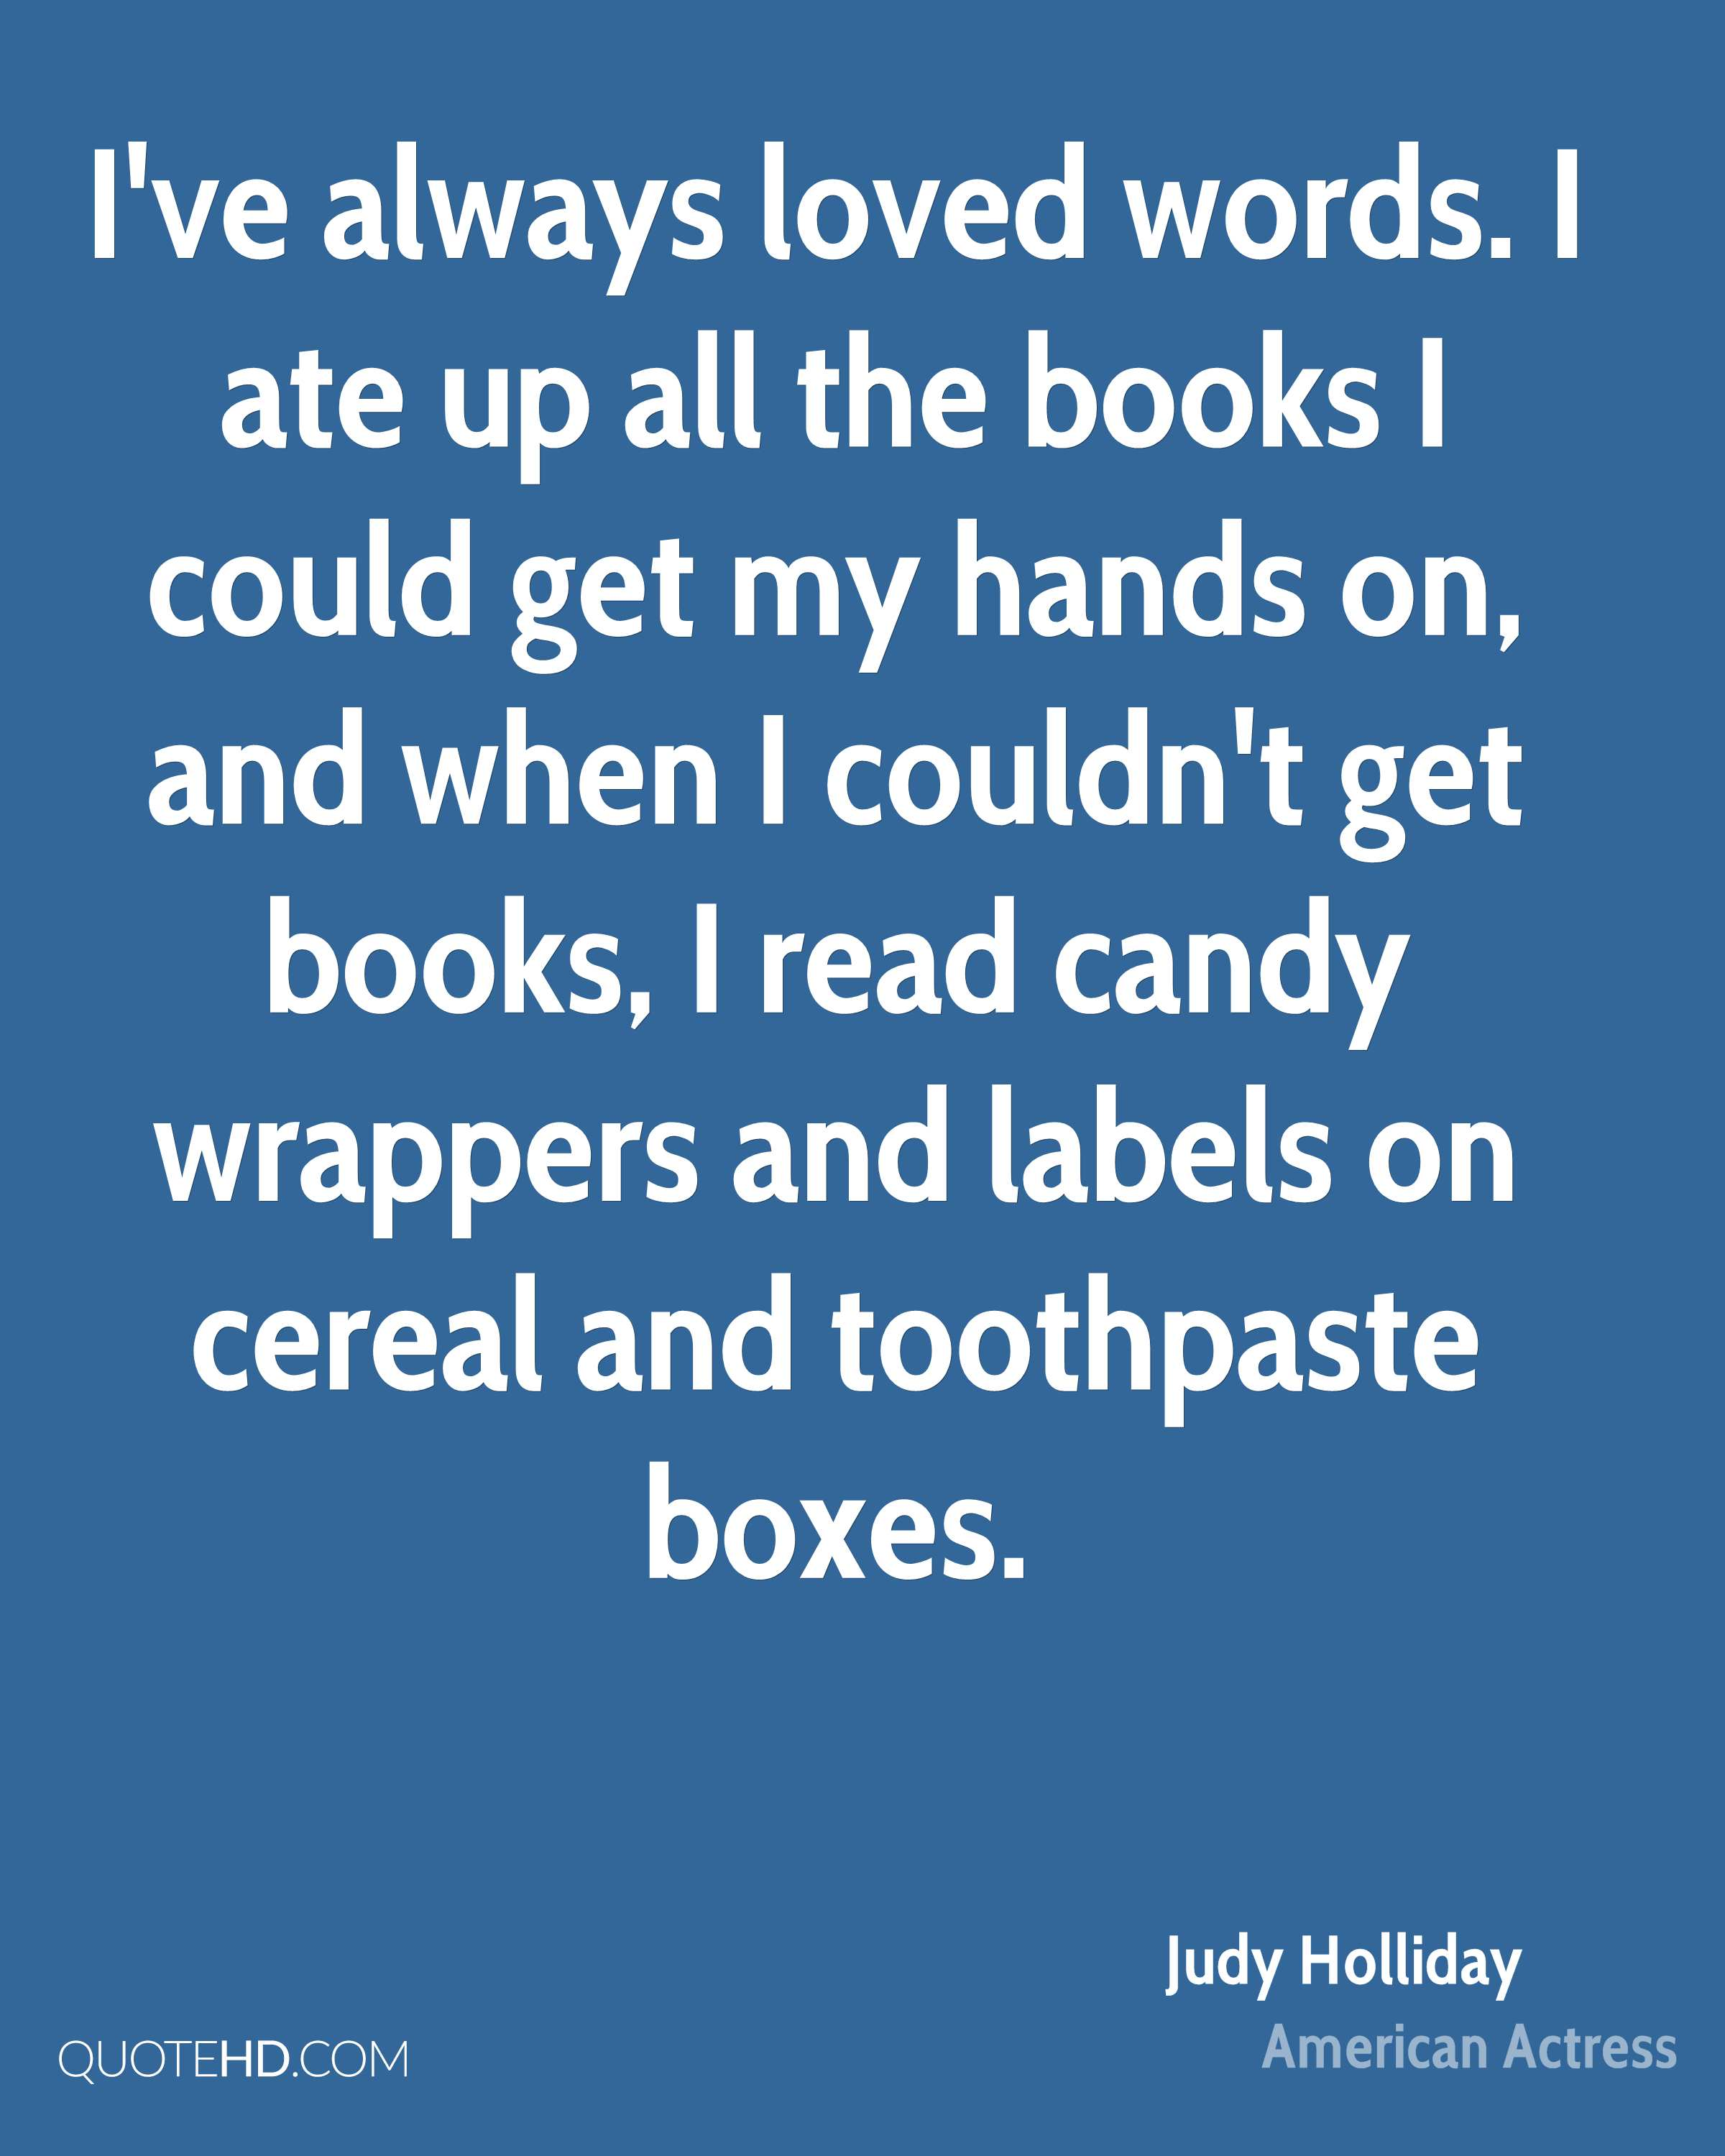 I've always loved words. I ate up all the books I could get my hands on, and when I couldn't get books, I read candy wrappers and labels on cereal and toothpaste boxes.